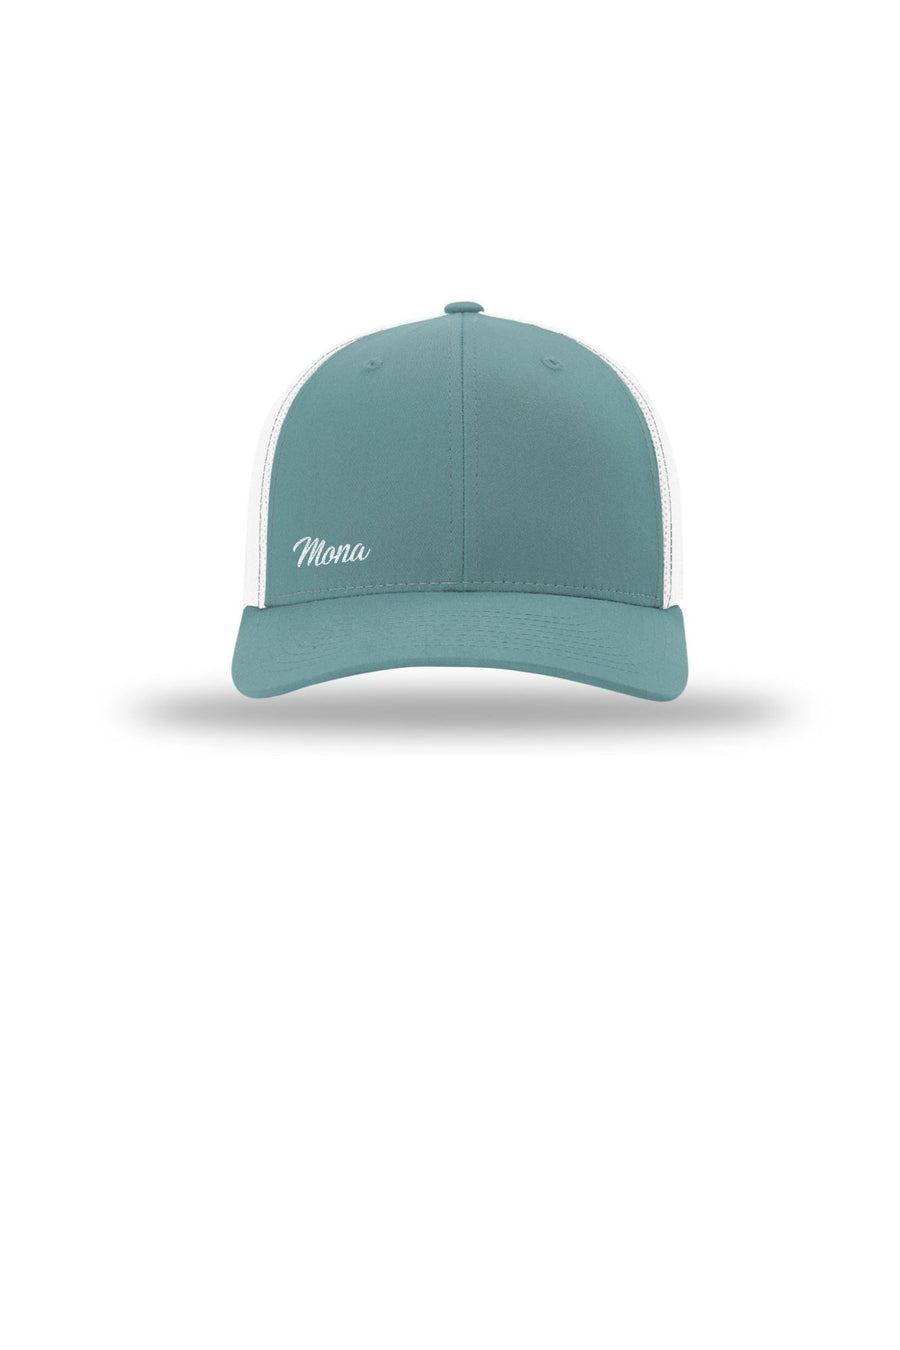 The Mona Workout Cap (Teal Heather / Birch) Accessories Caps Mona